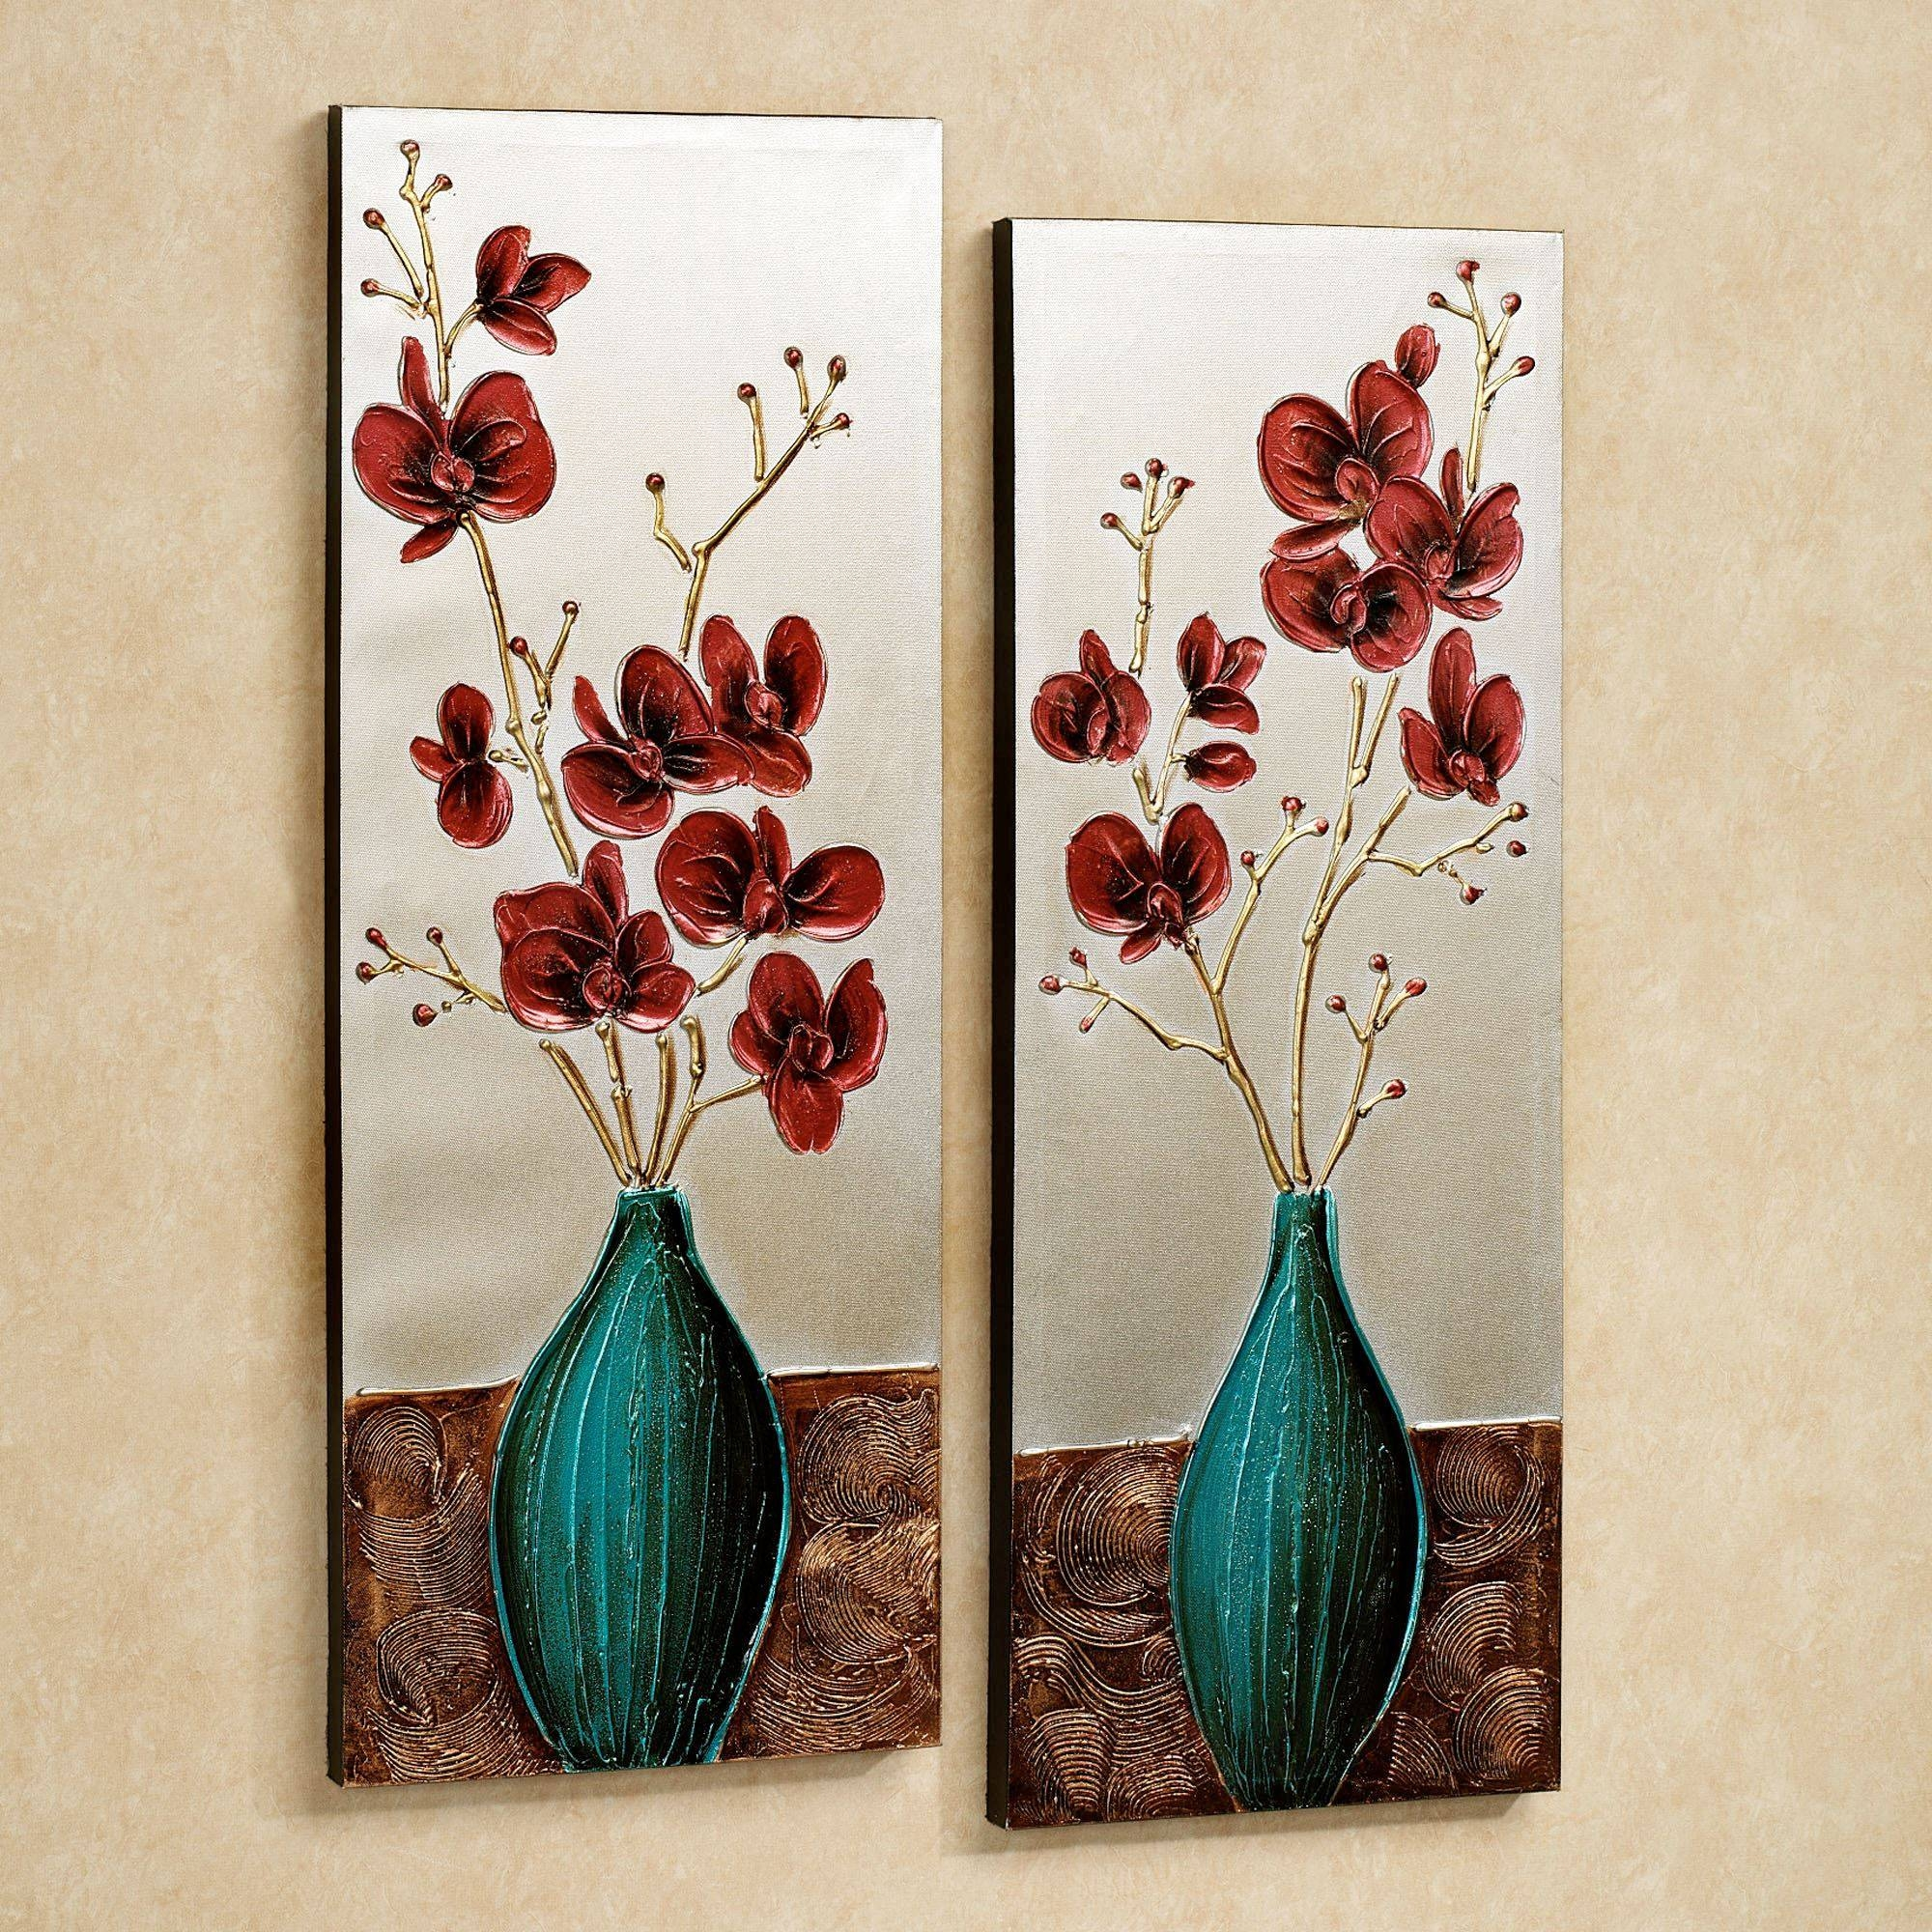 Orchid Medley Floral Canvas Wall Art Set Inside Recent Floral Wall Art Canvas (View 9 of 20)